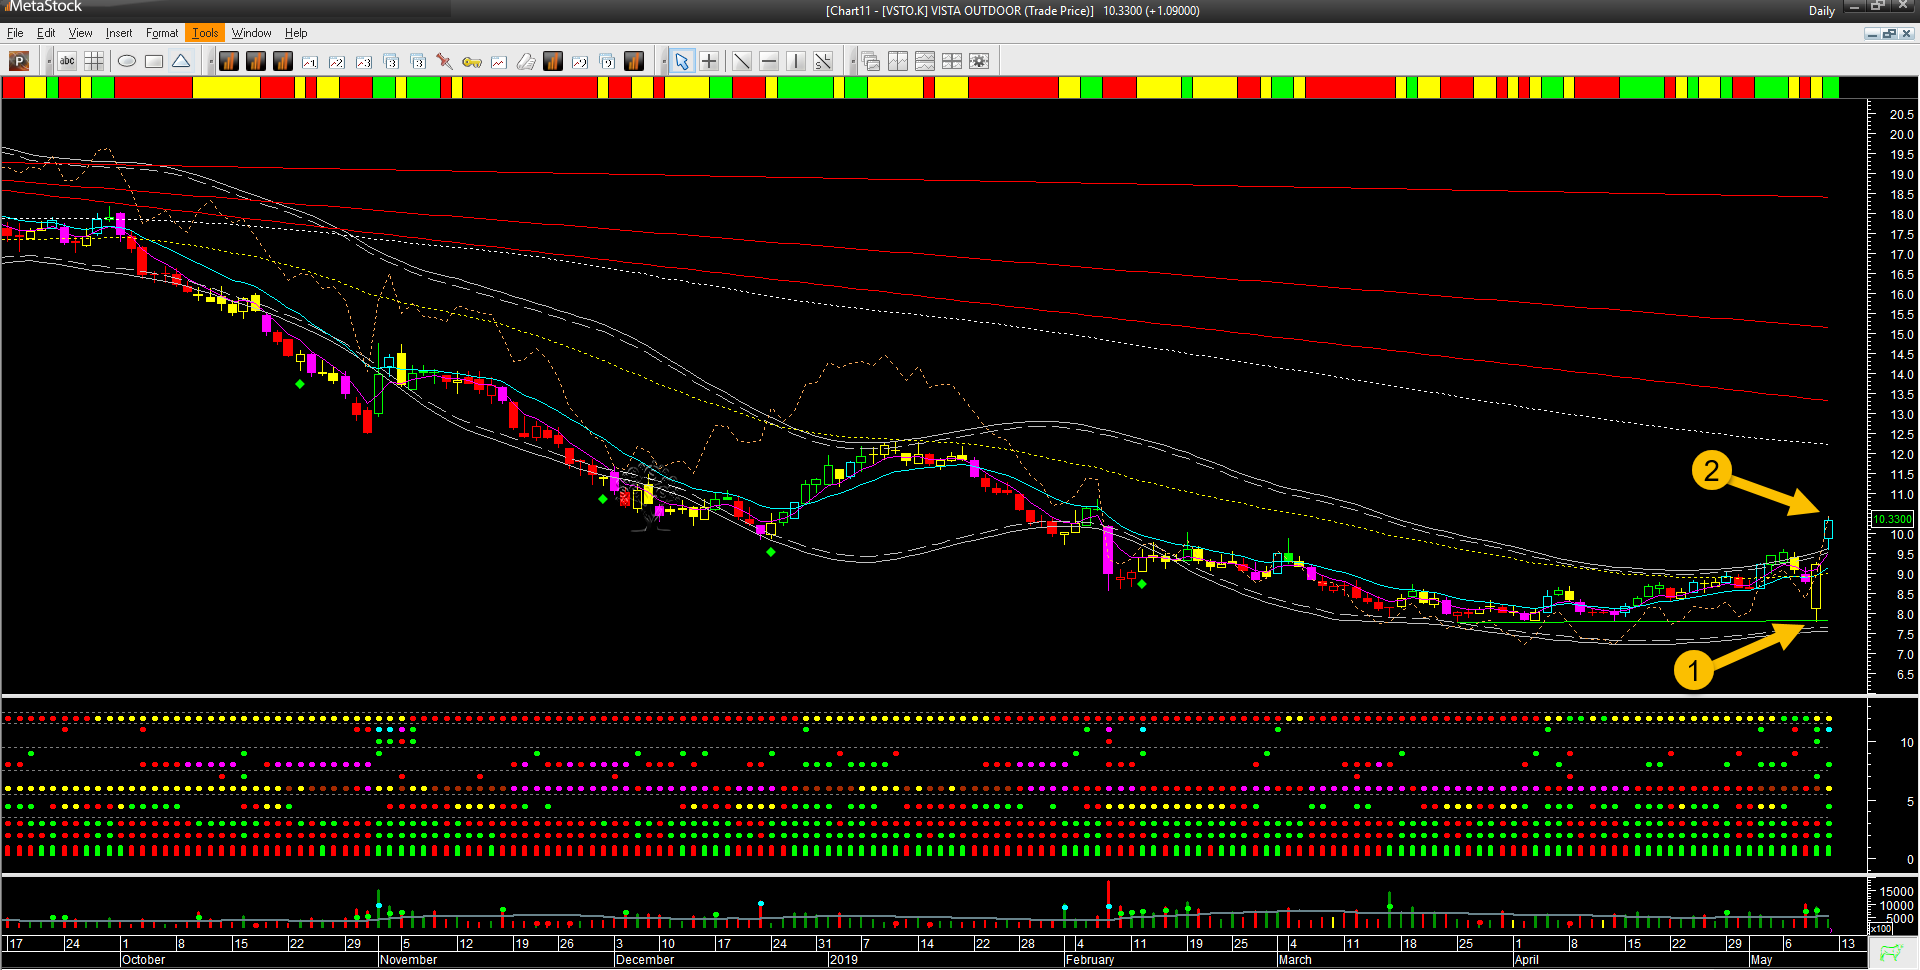 vsto 2 chart exit 2019-05-10_10-37-17.png